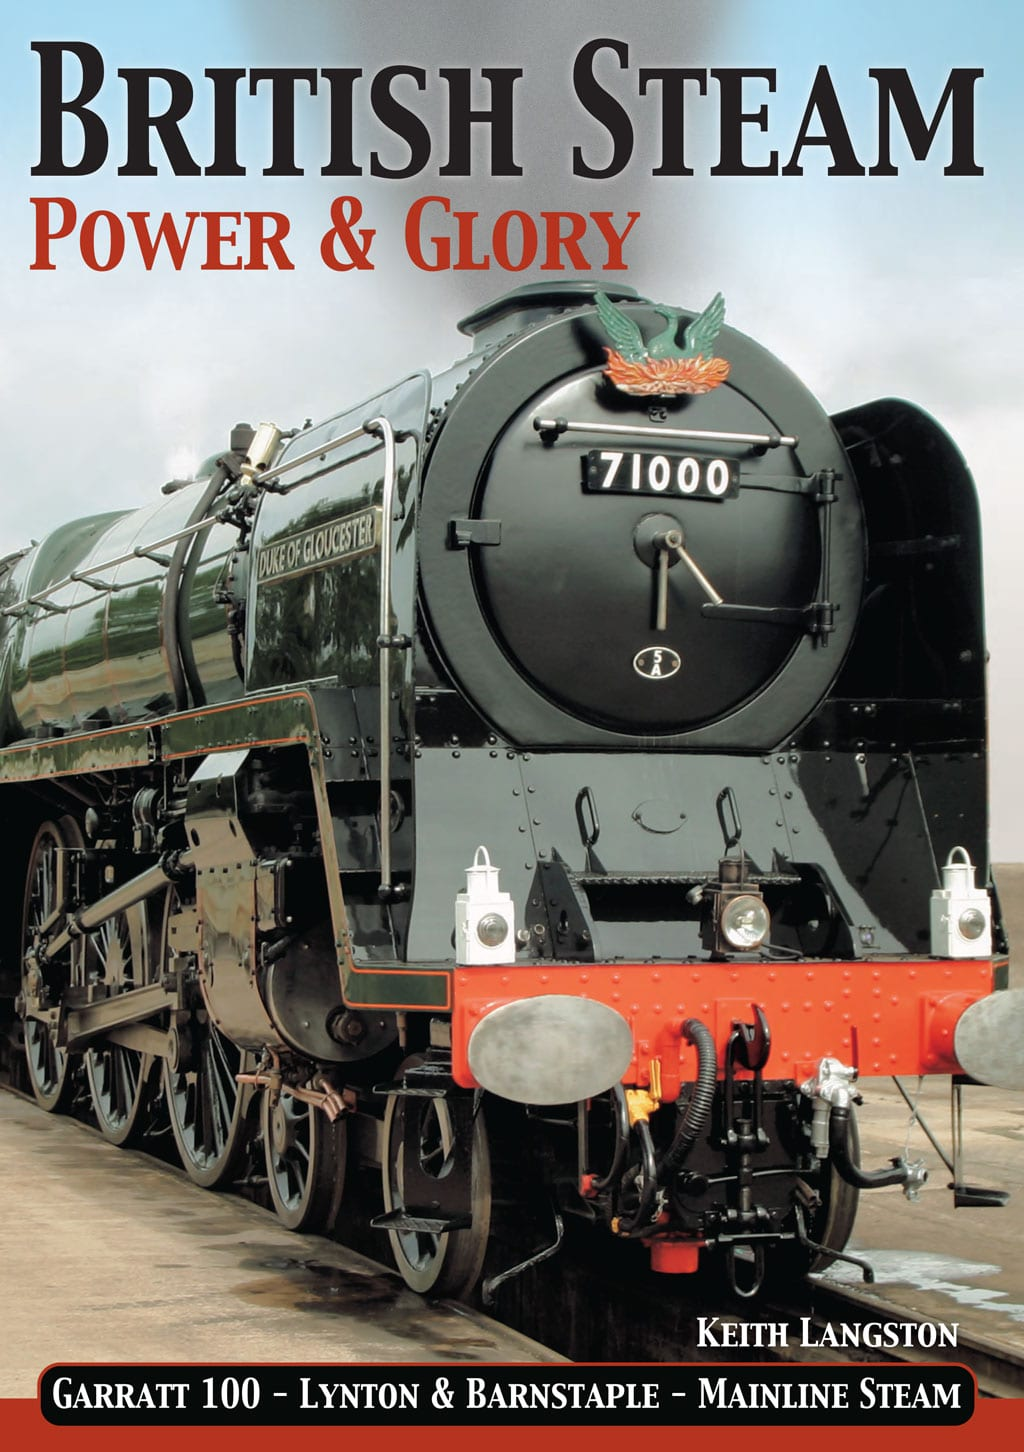 British Steam Power & Glory